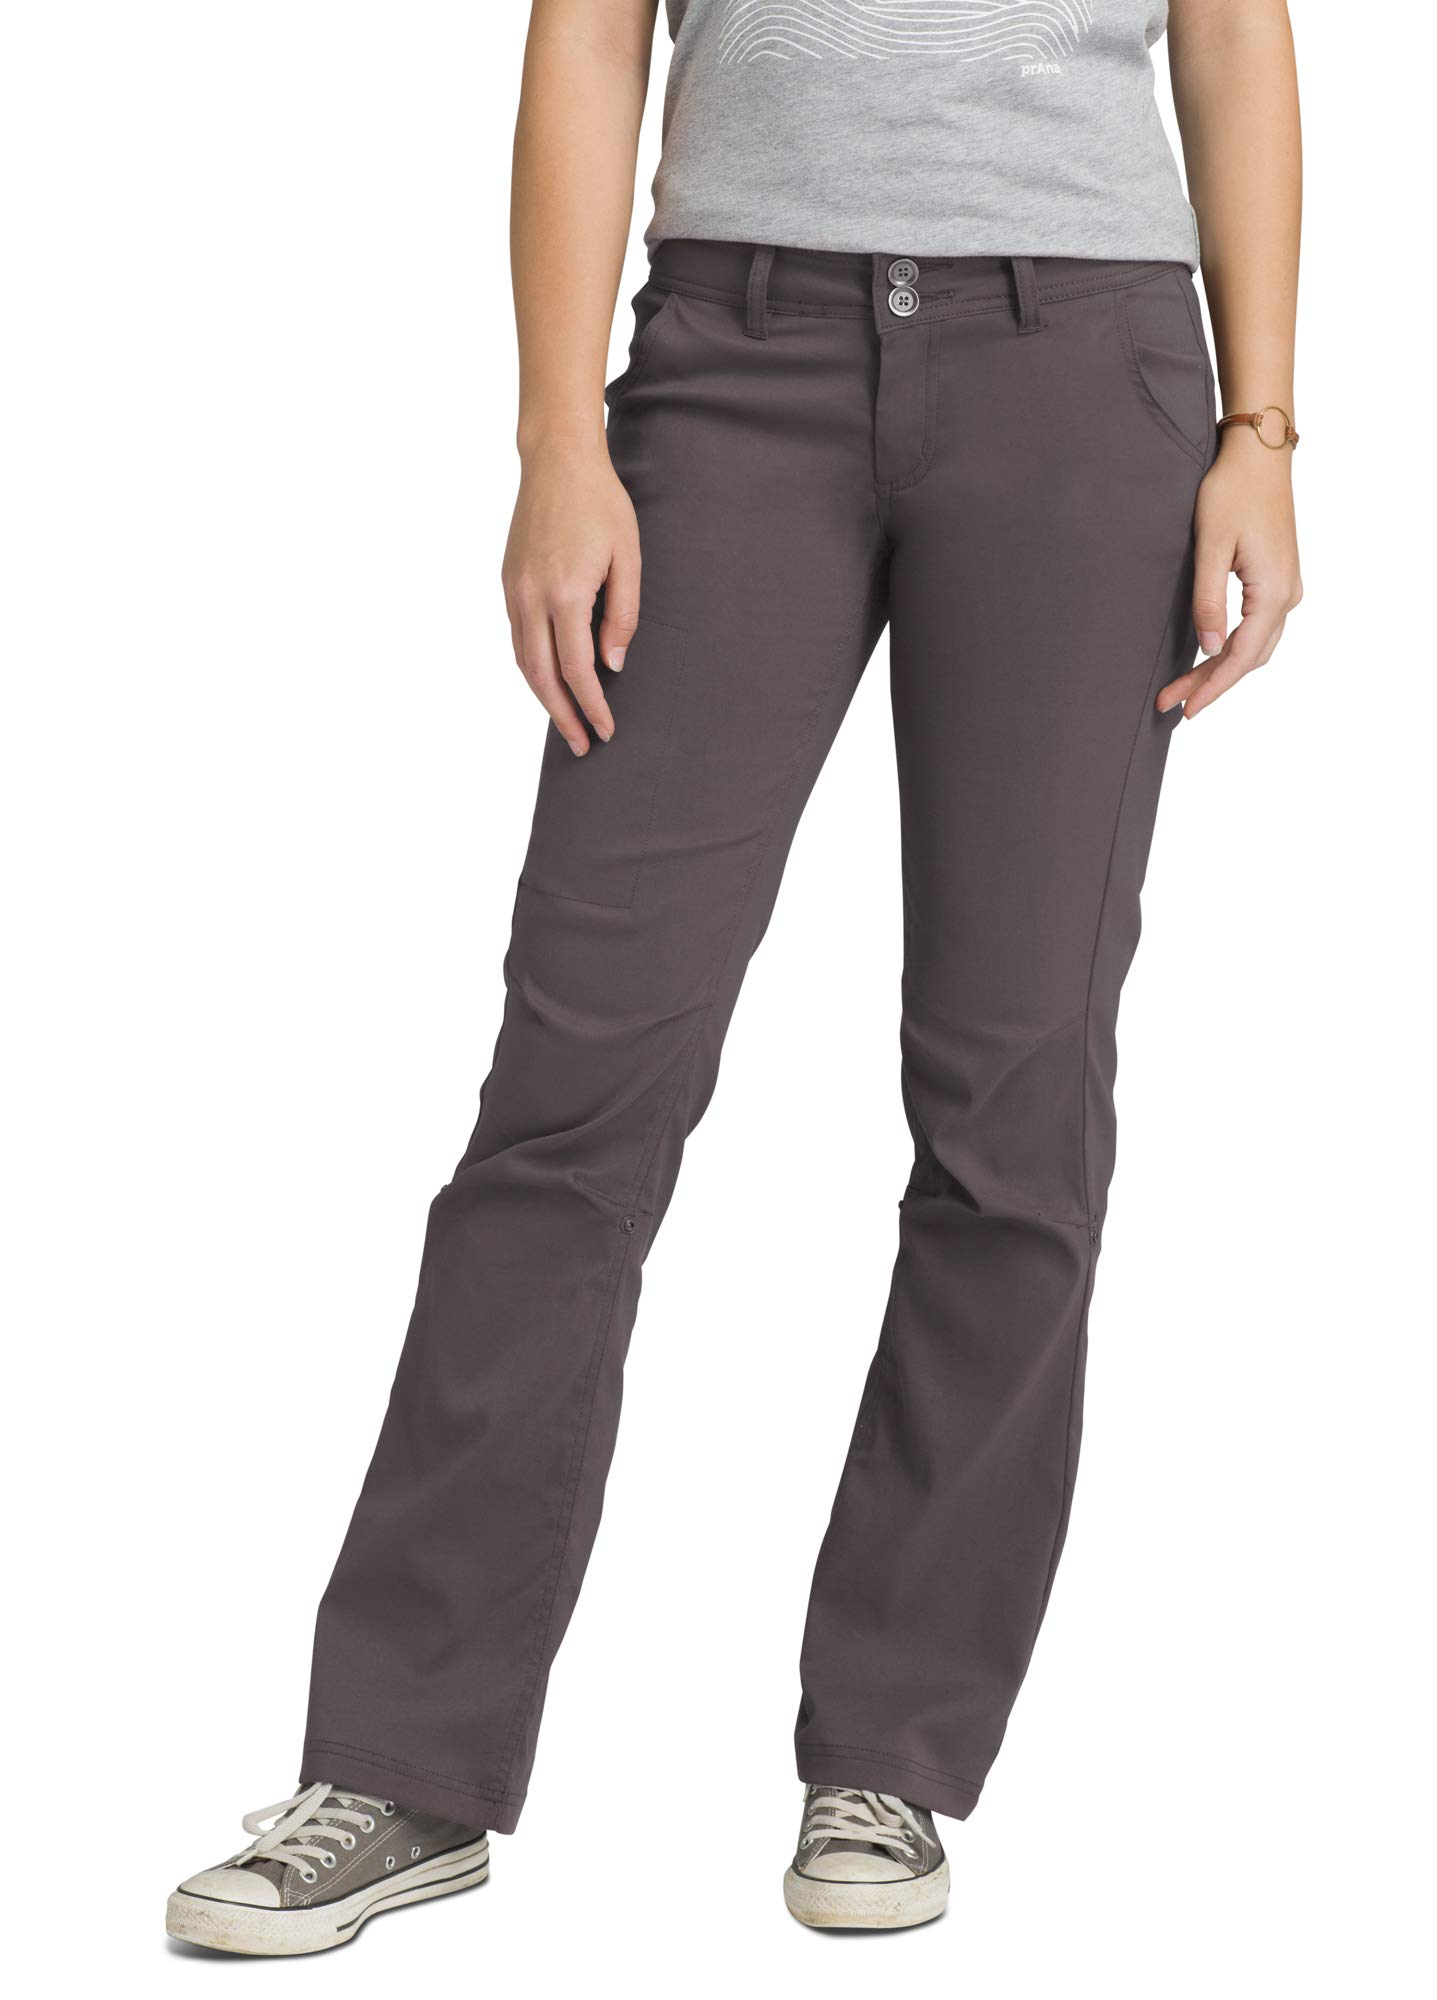 prAna - Women's Halle Roll-up, Water-Repellent Stretch Pants for Hiking and Everyday Wear, Tall Inseam, Moonrock, 6 by prAna